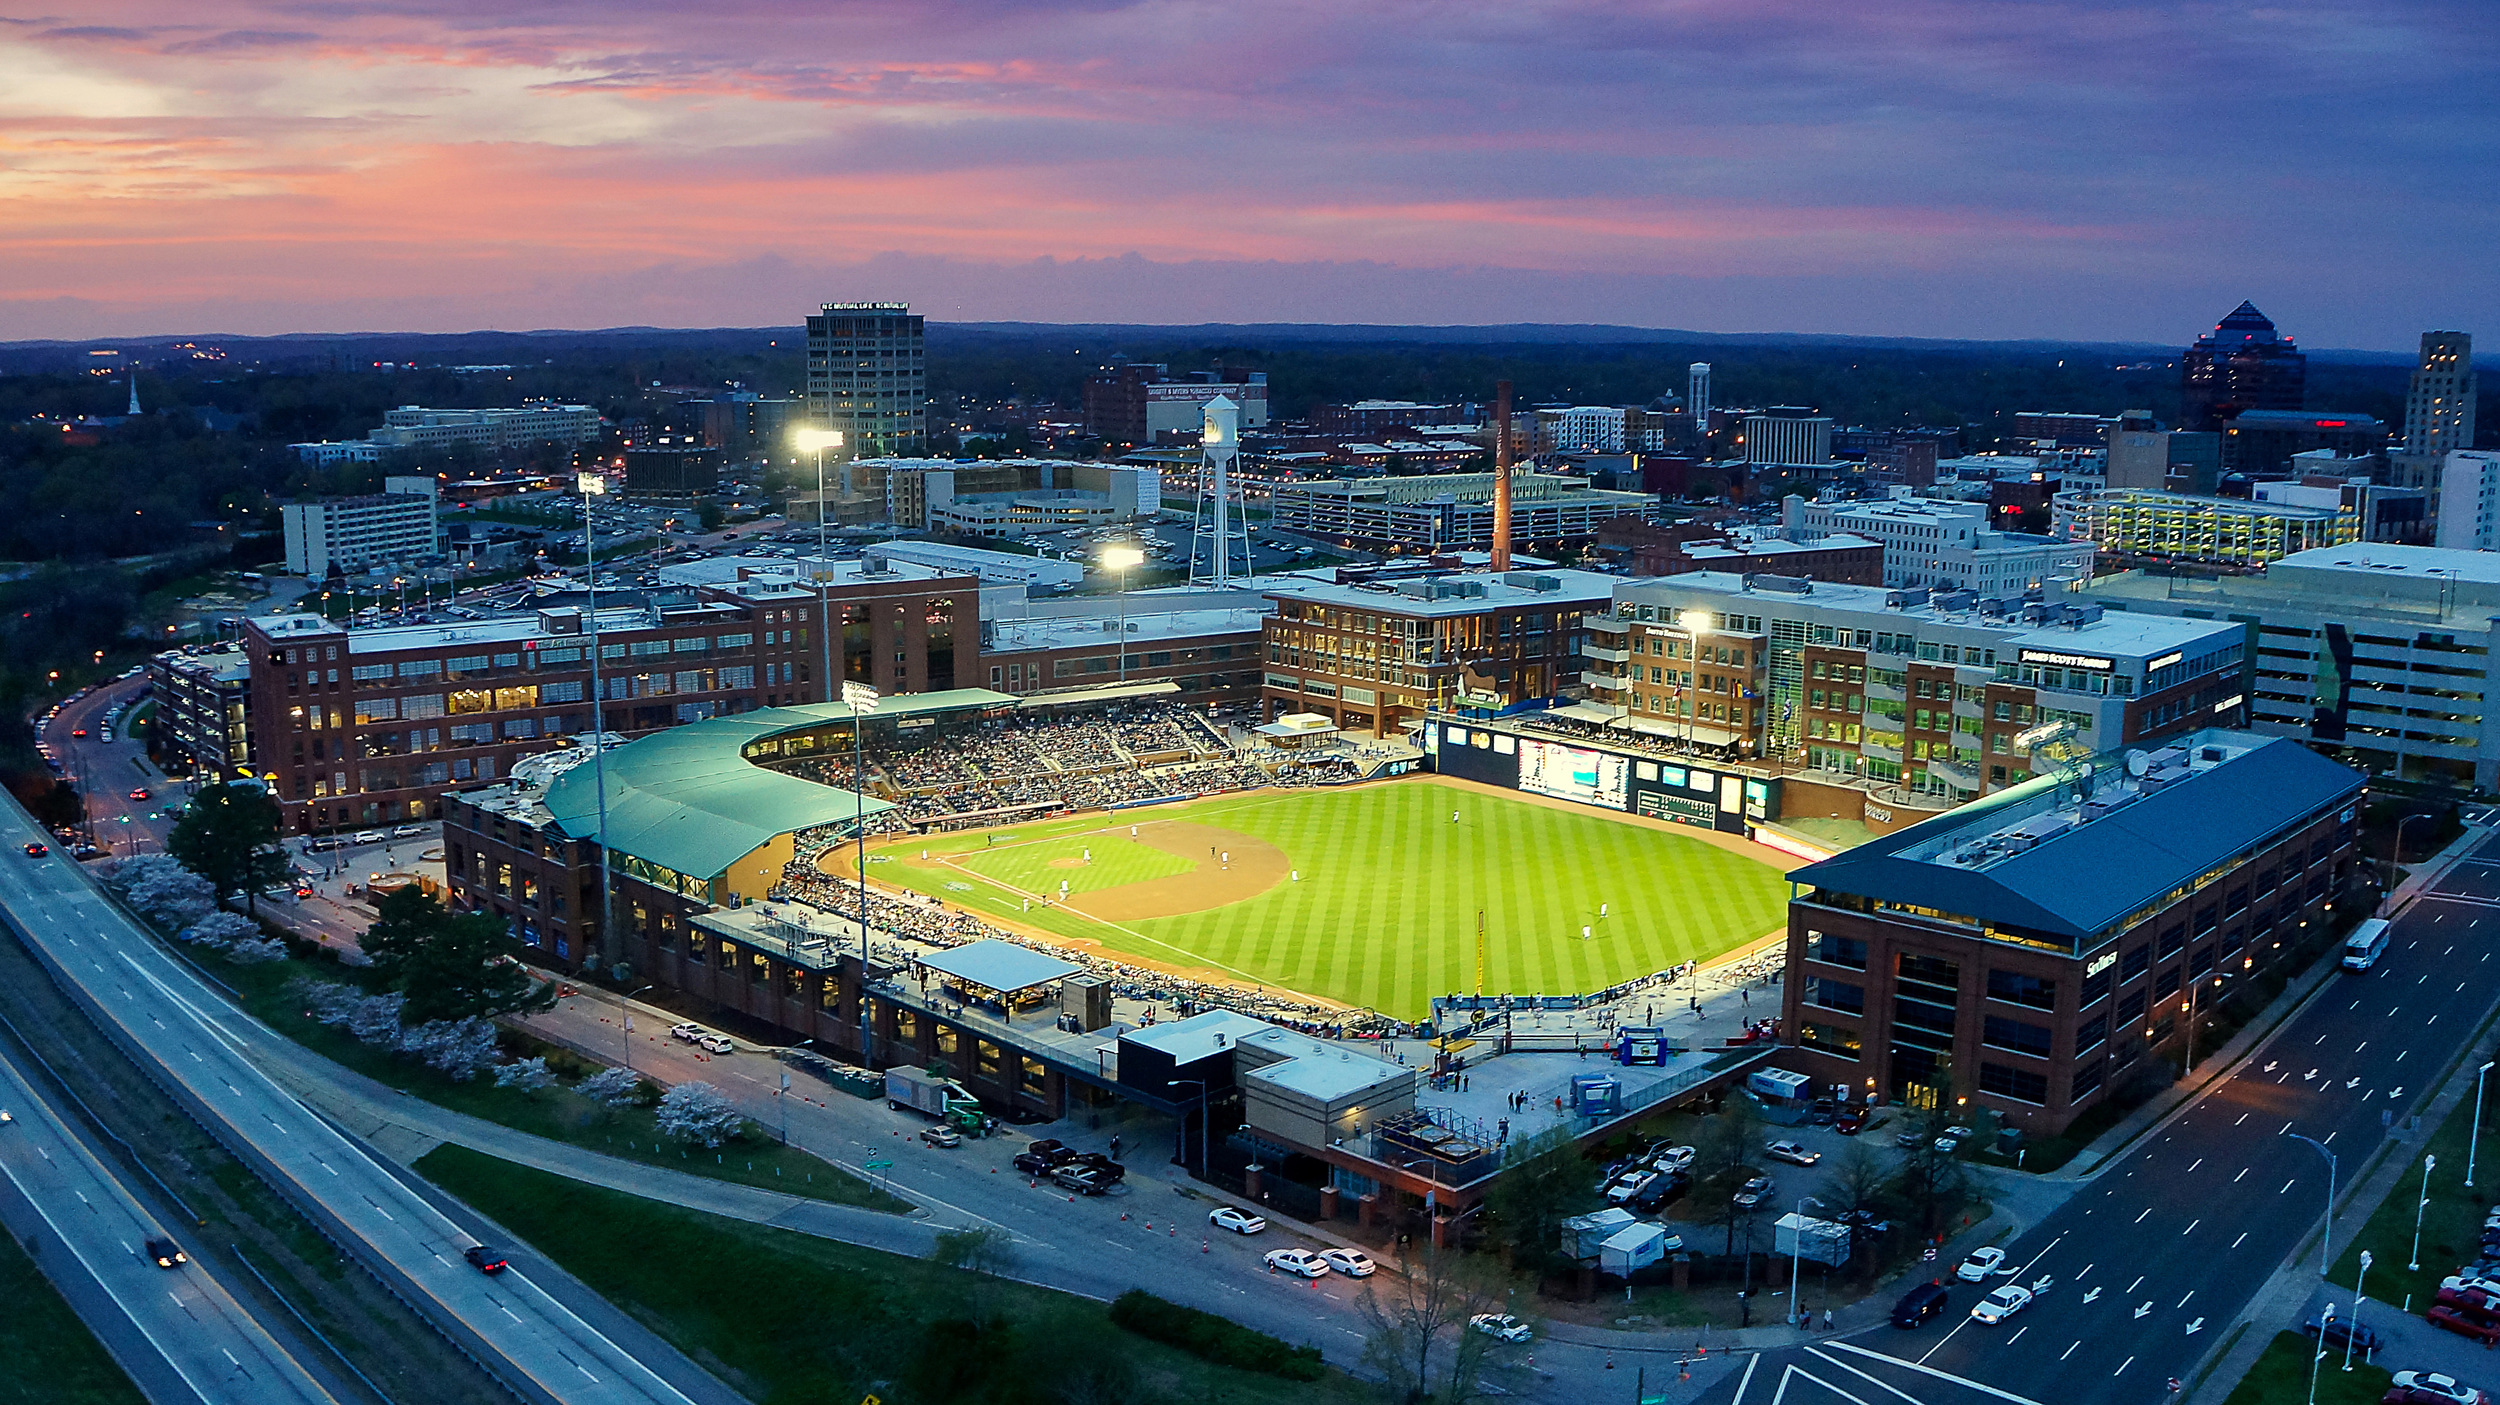 THE DURHAM BULLS BALLPARK (PHOTO COURTESY OF DRONESTAGR.AM)